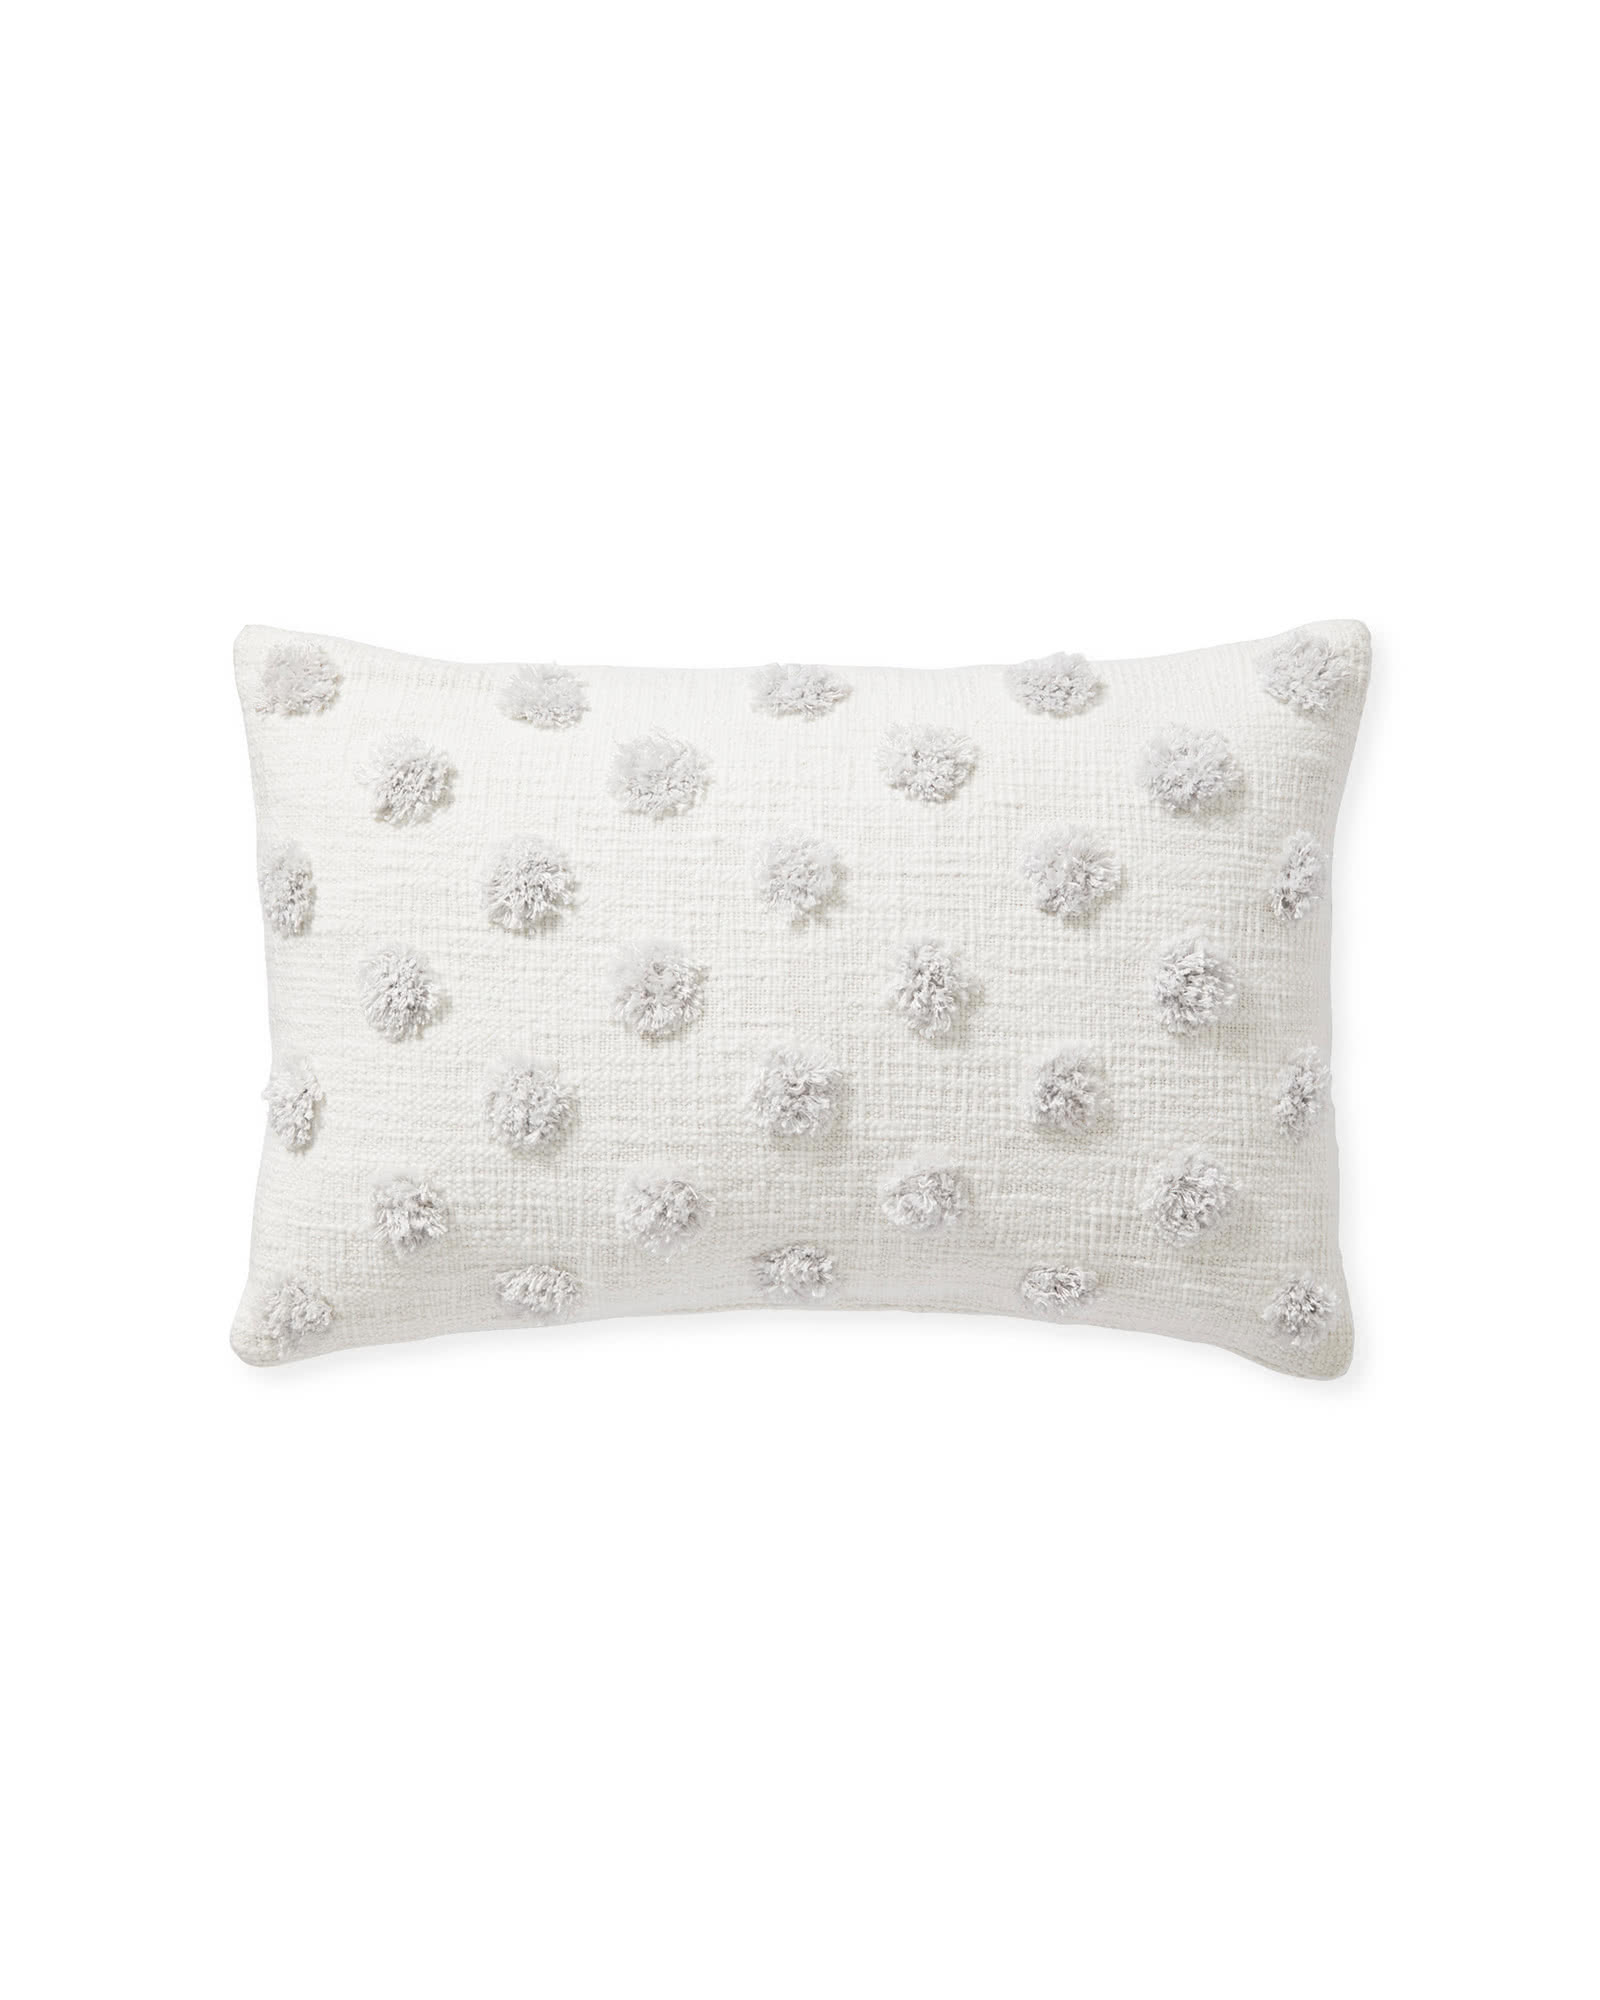 Willow Pillow Cover,